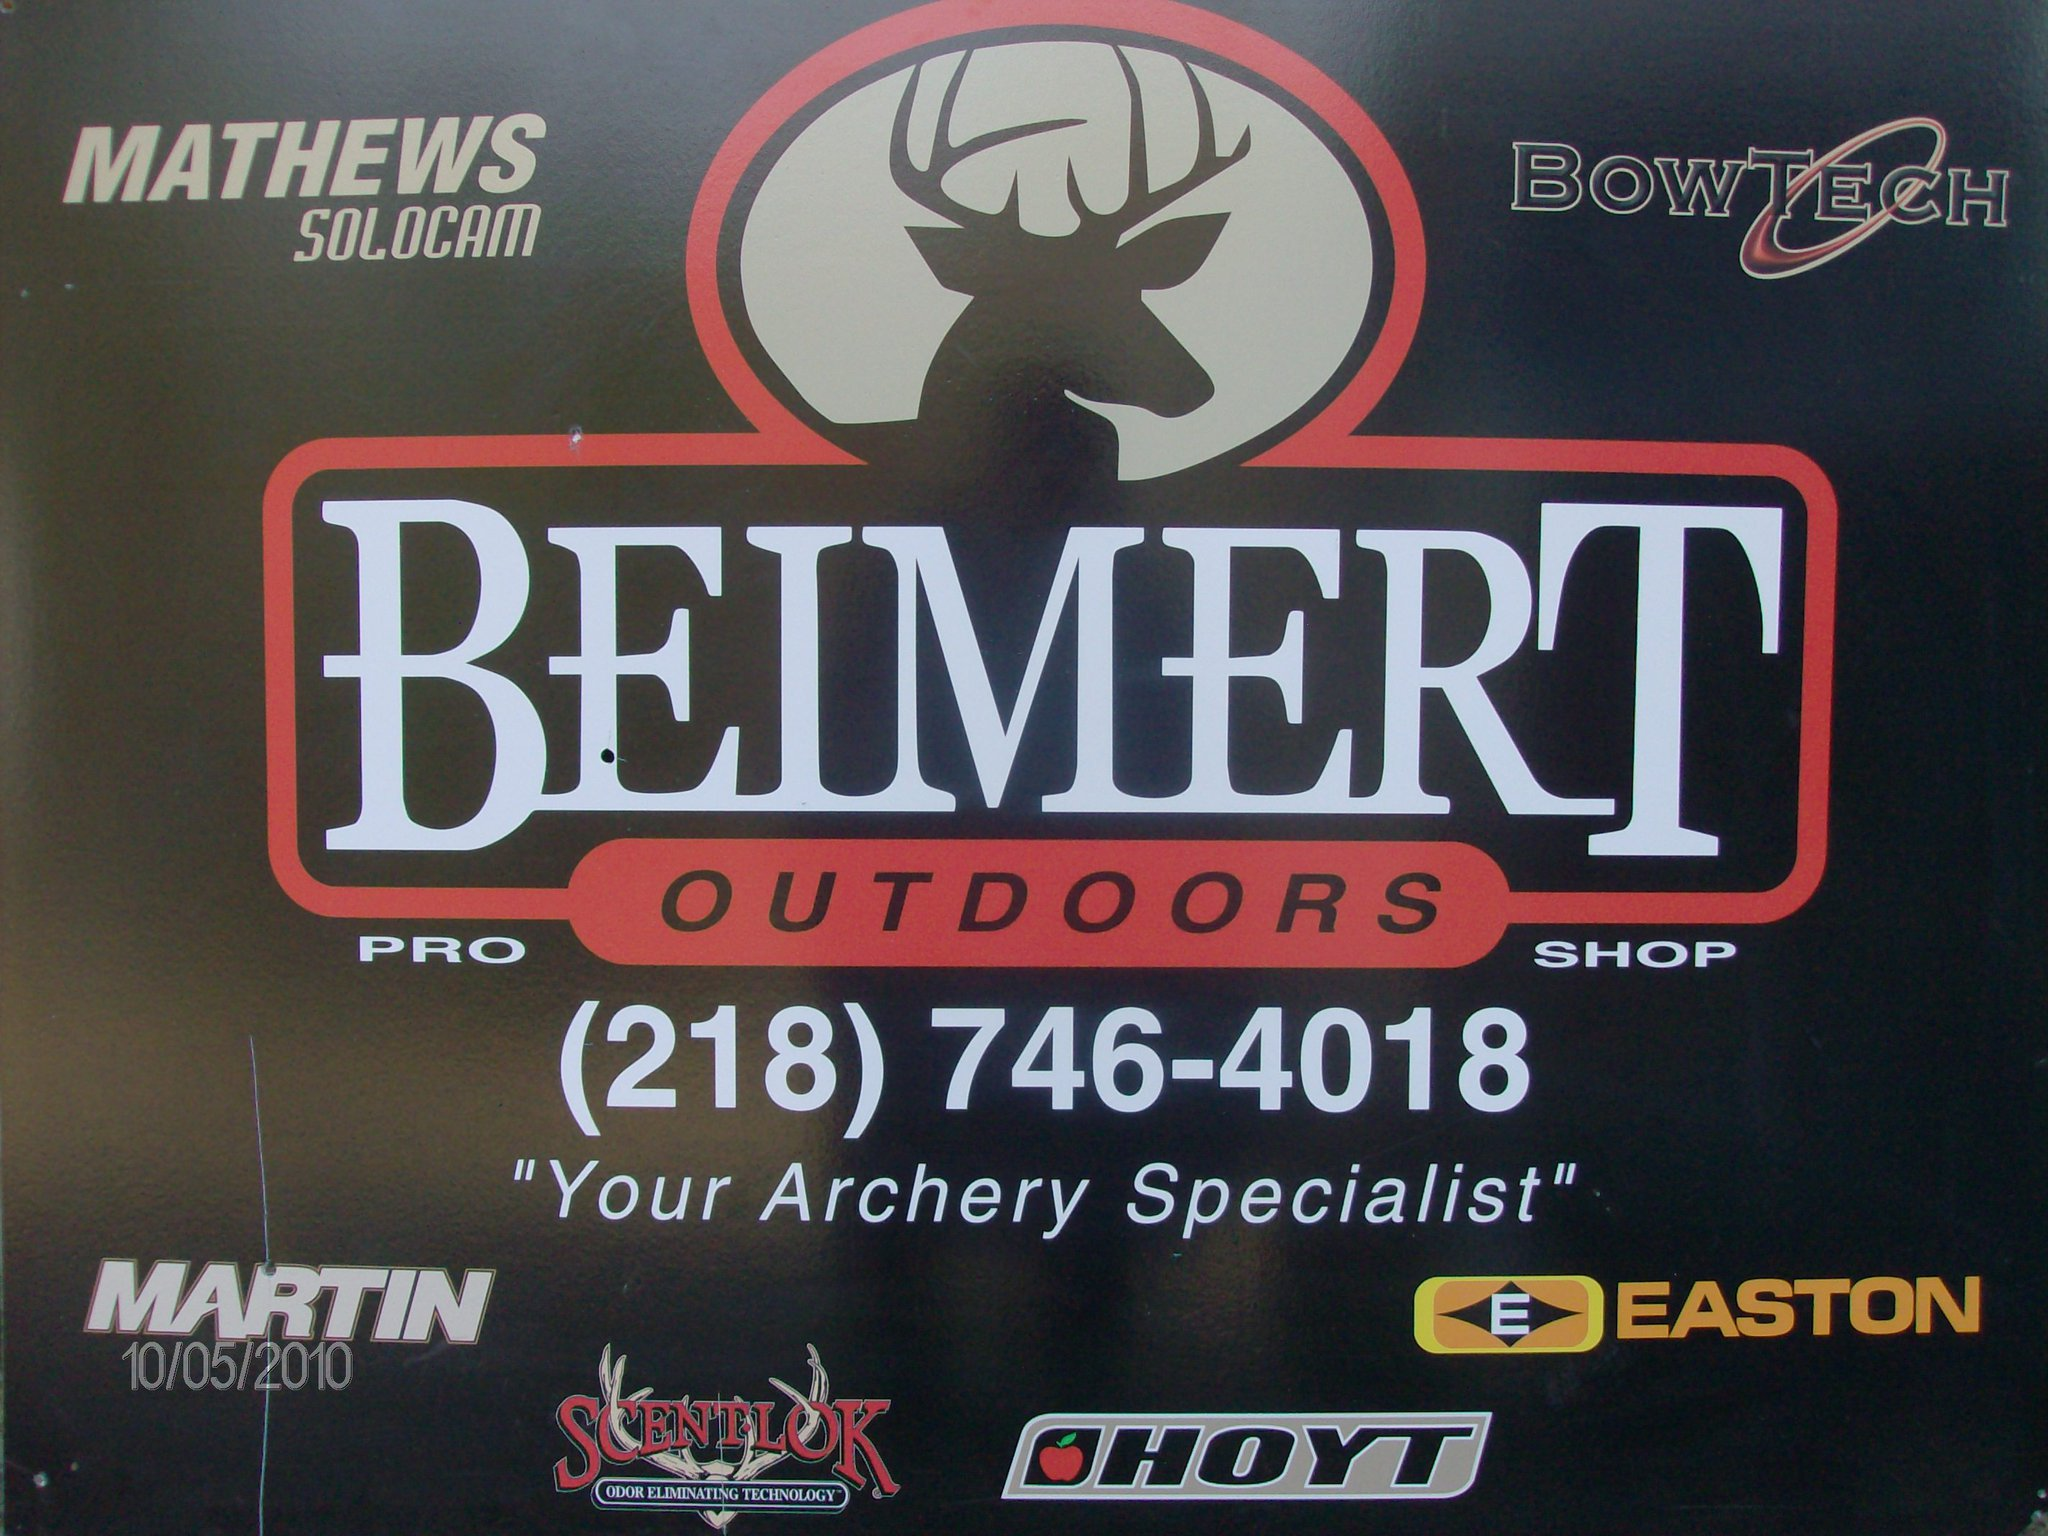 Beimert Outdoors